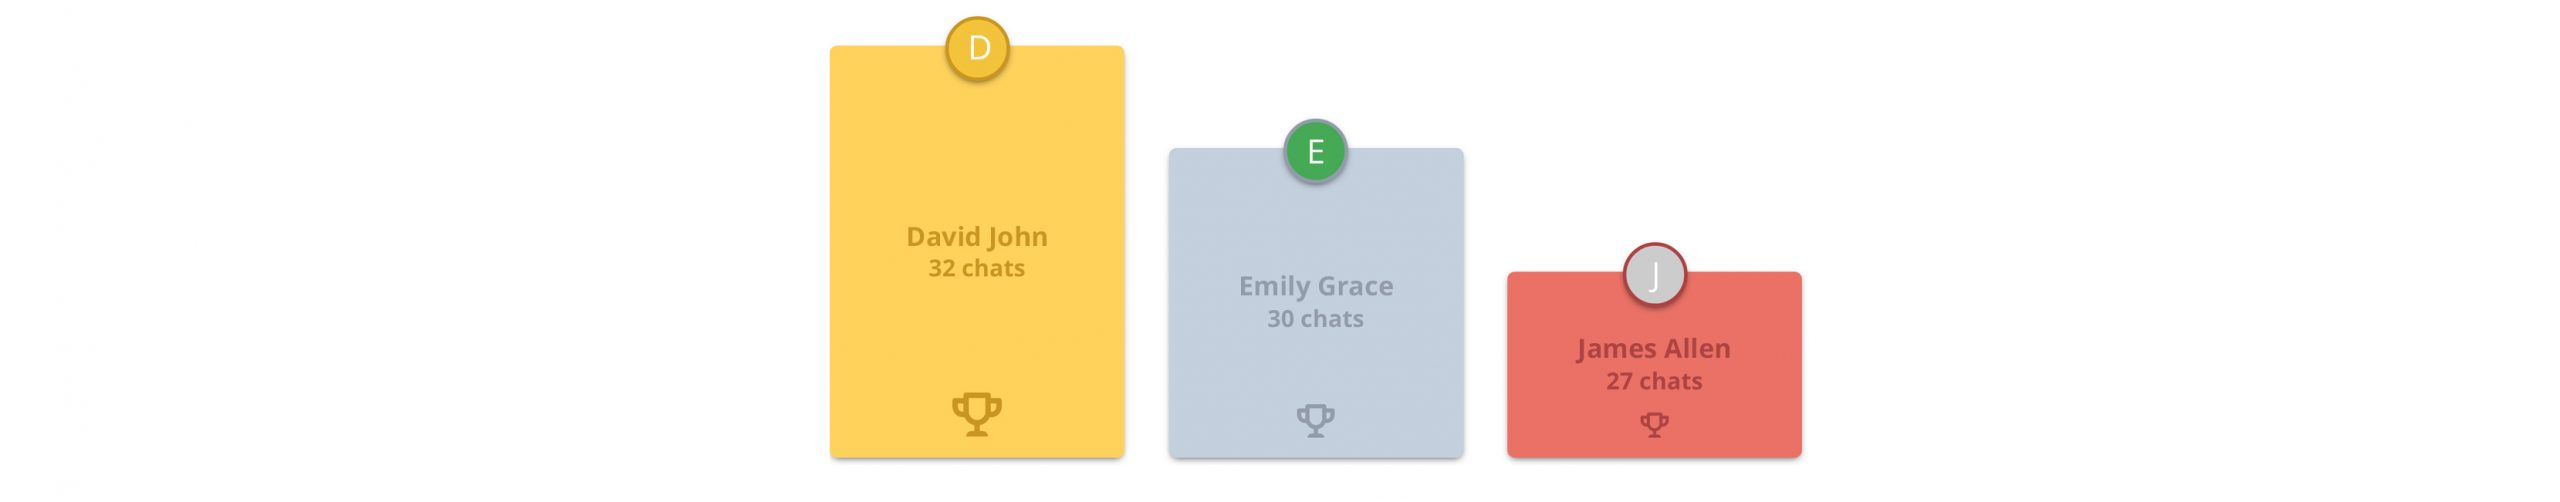 An image that shows Live Chat analytics